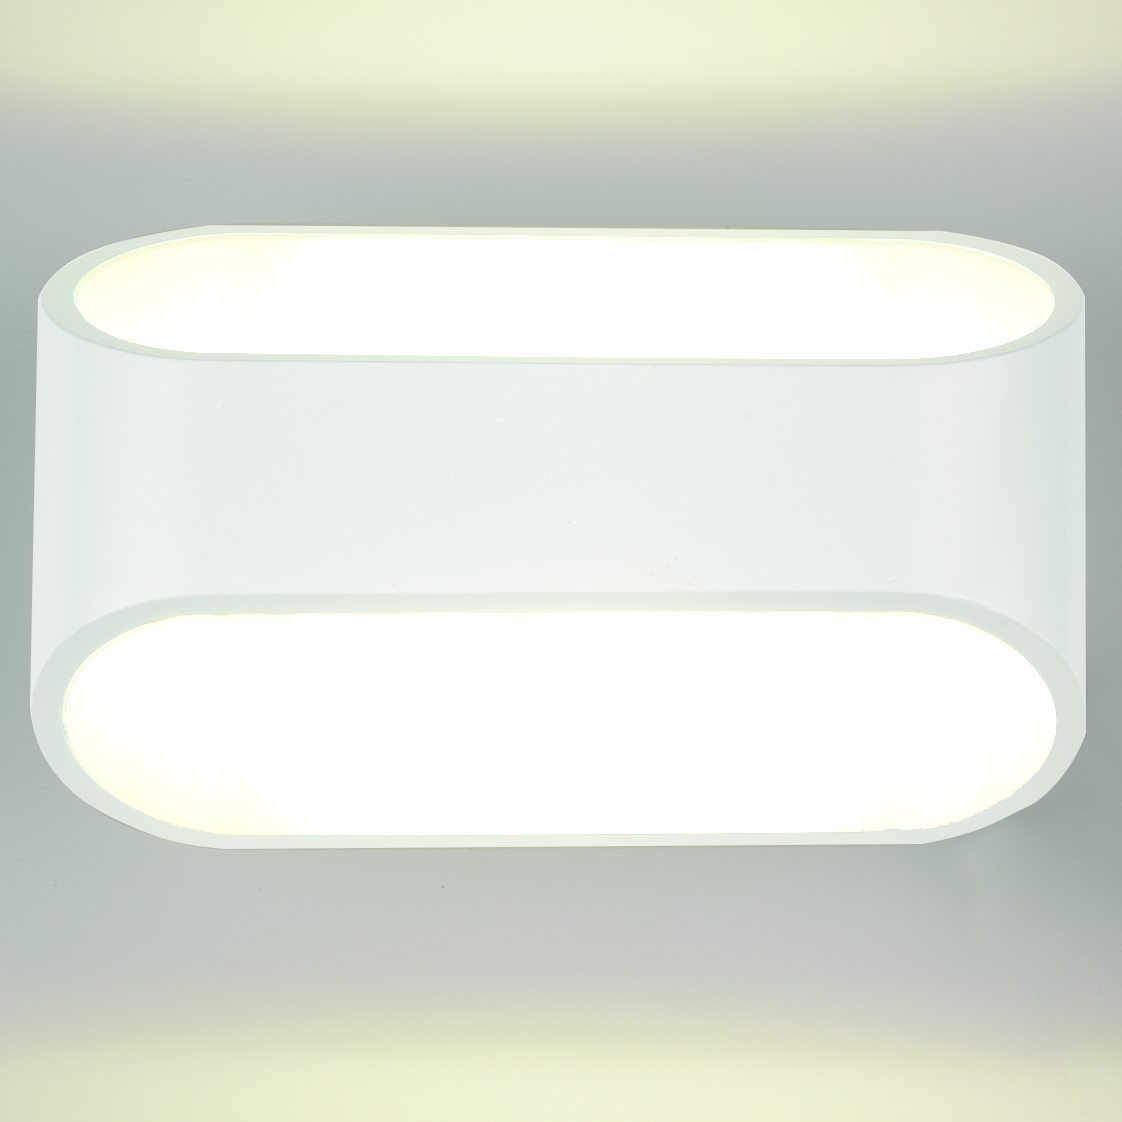 Led Wall Lights Price In Pakistan: LED WALL LAMP 18127